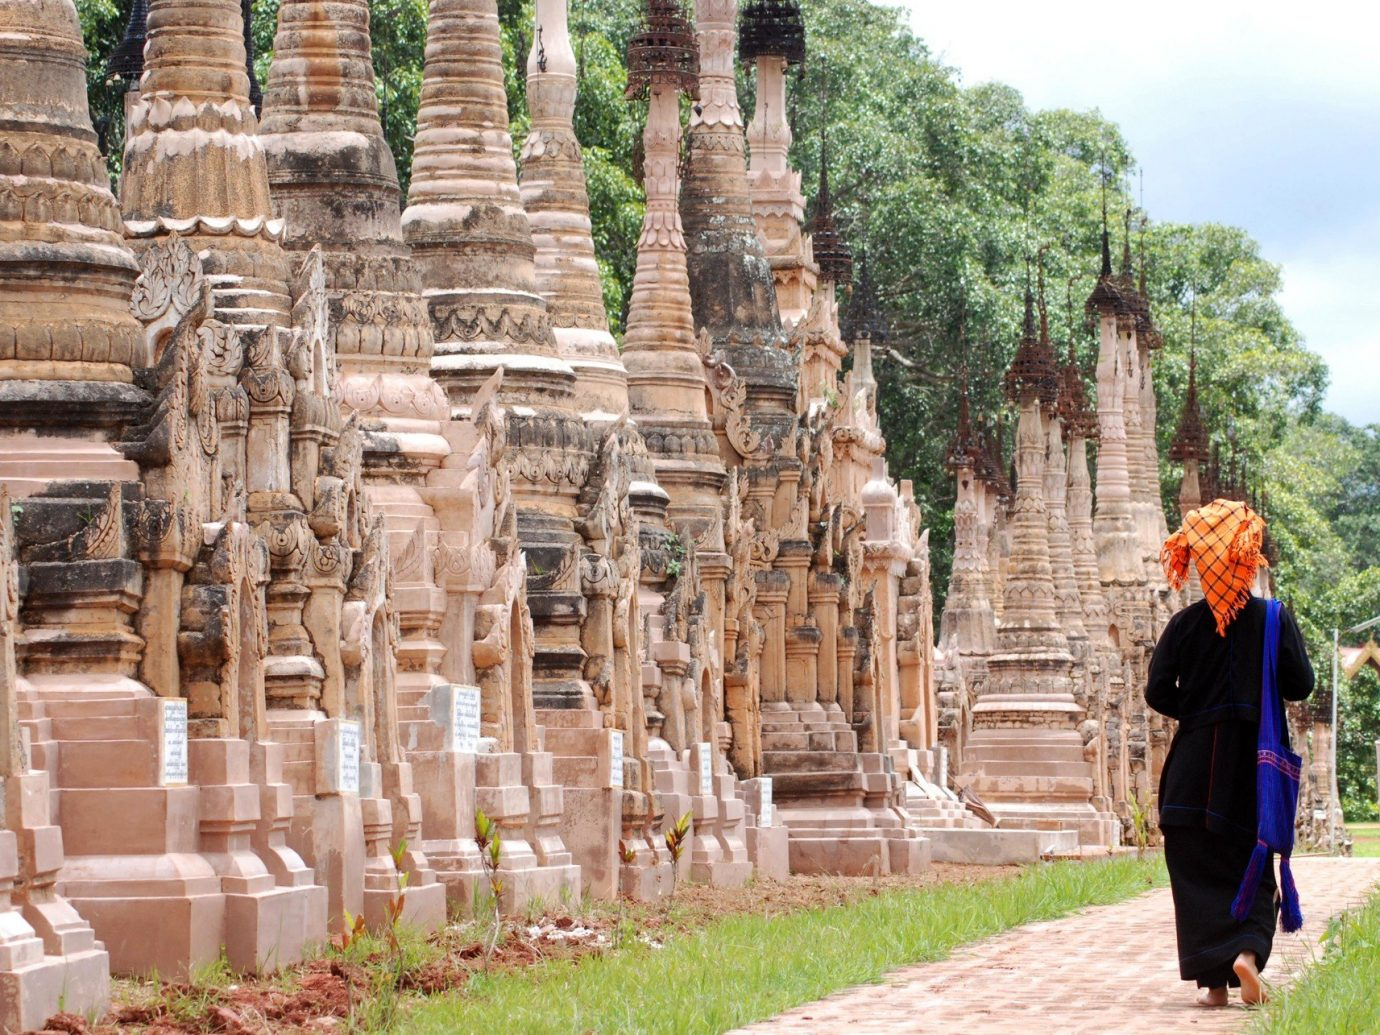 Trip Ideas outdoor archaeological site hindu temple tourism place of worship wat ancient history temple Ruins tours